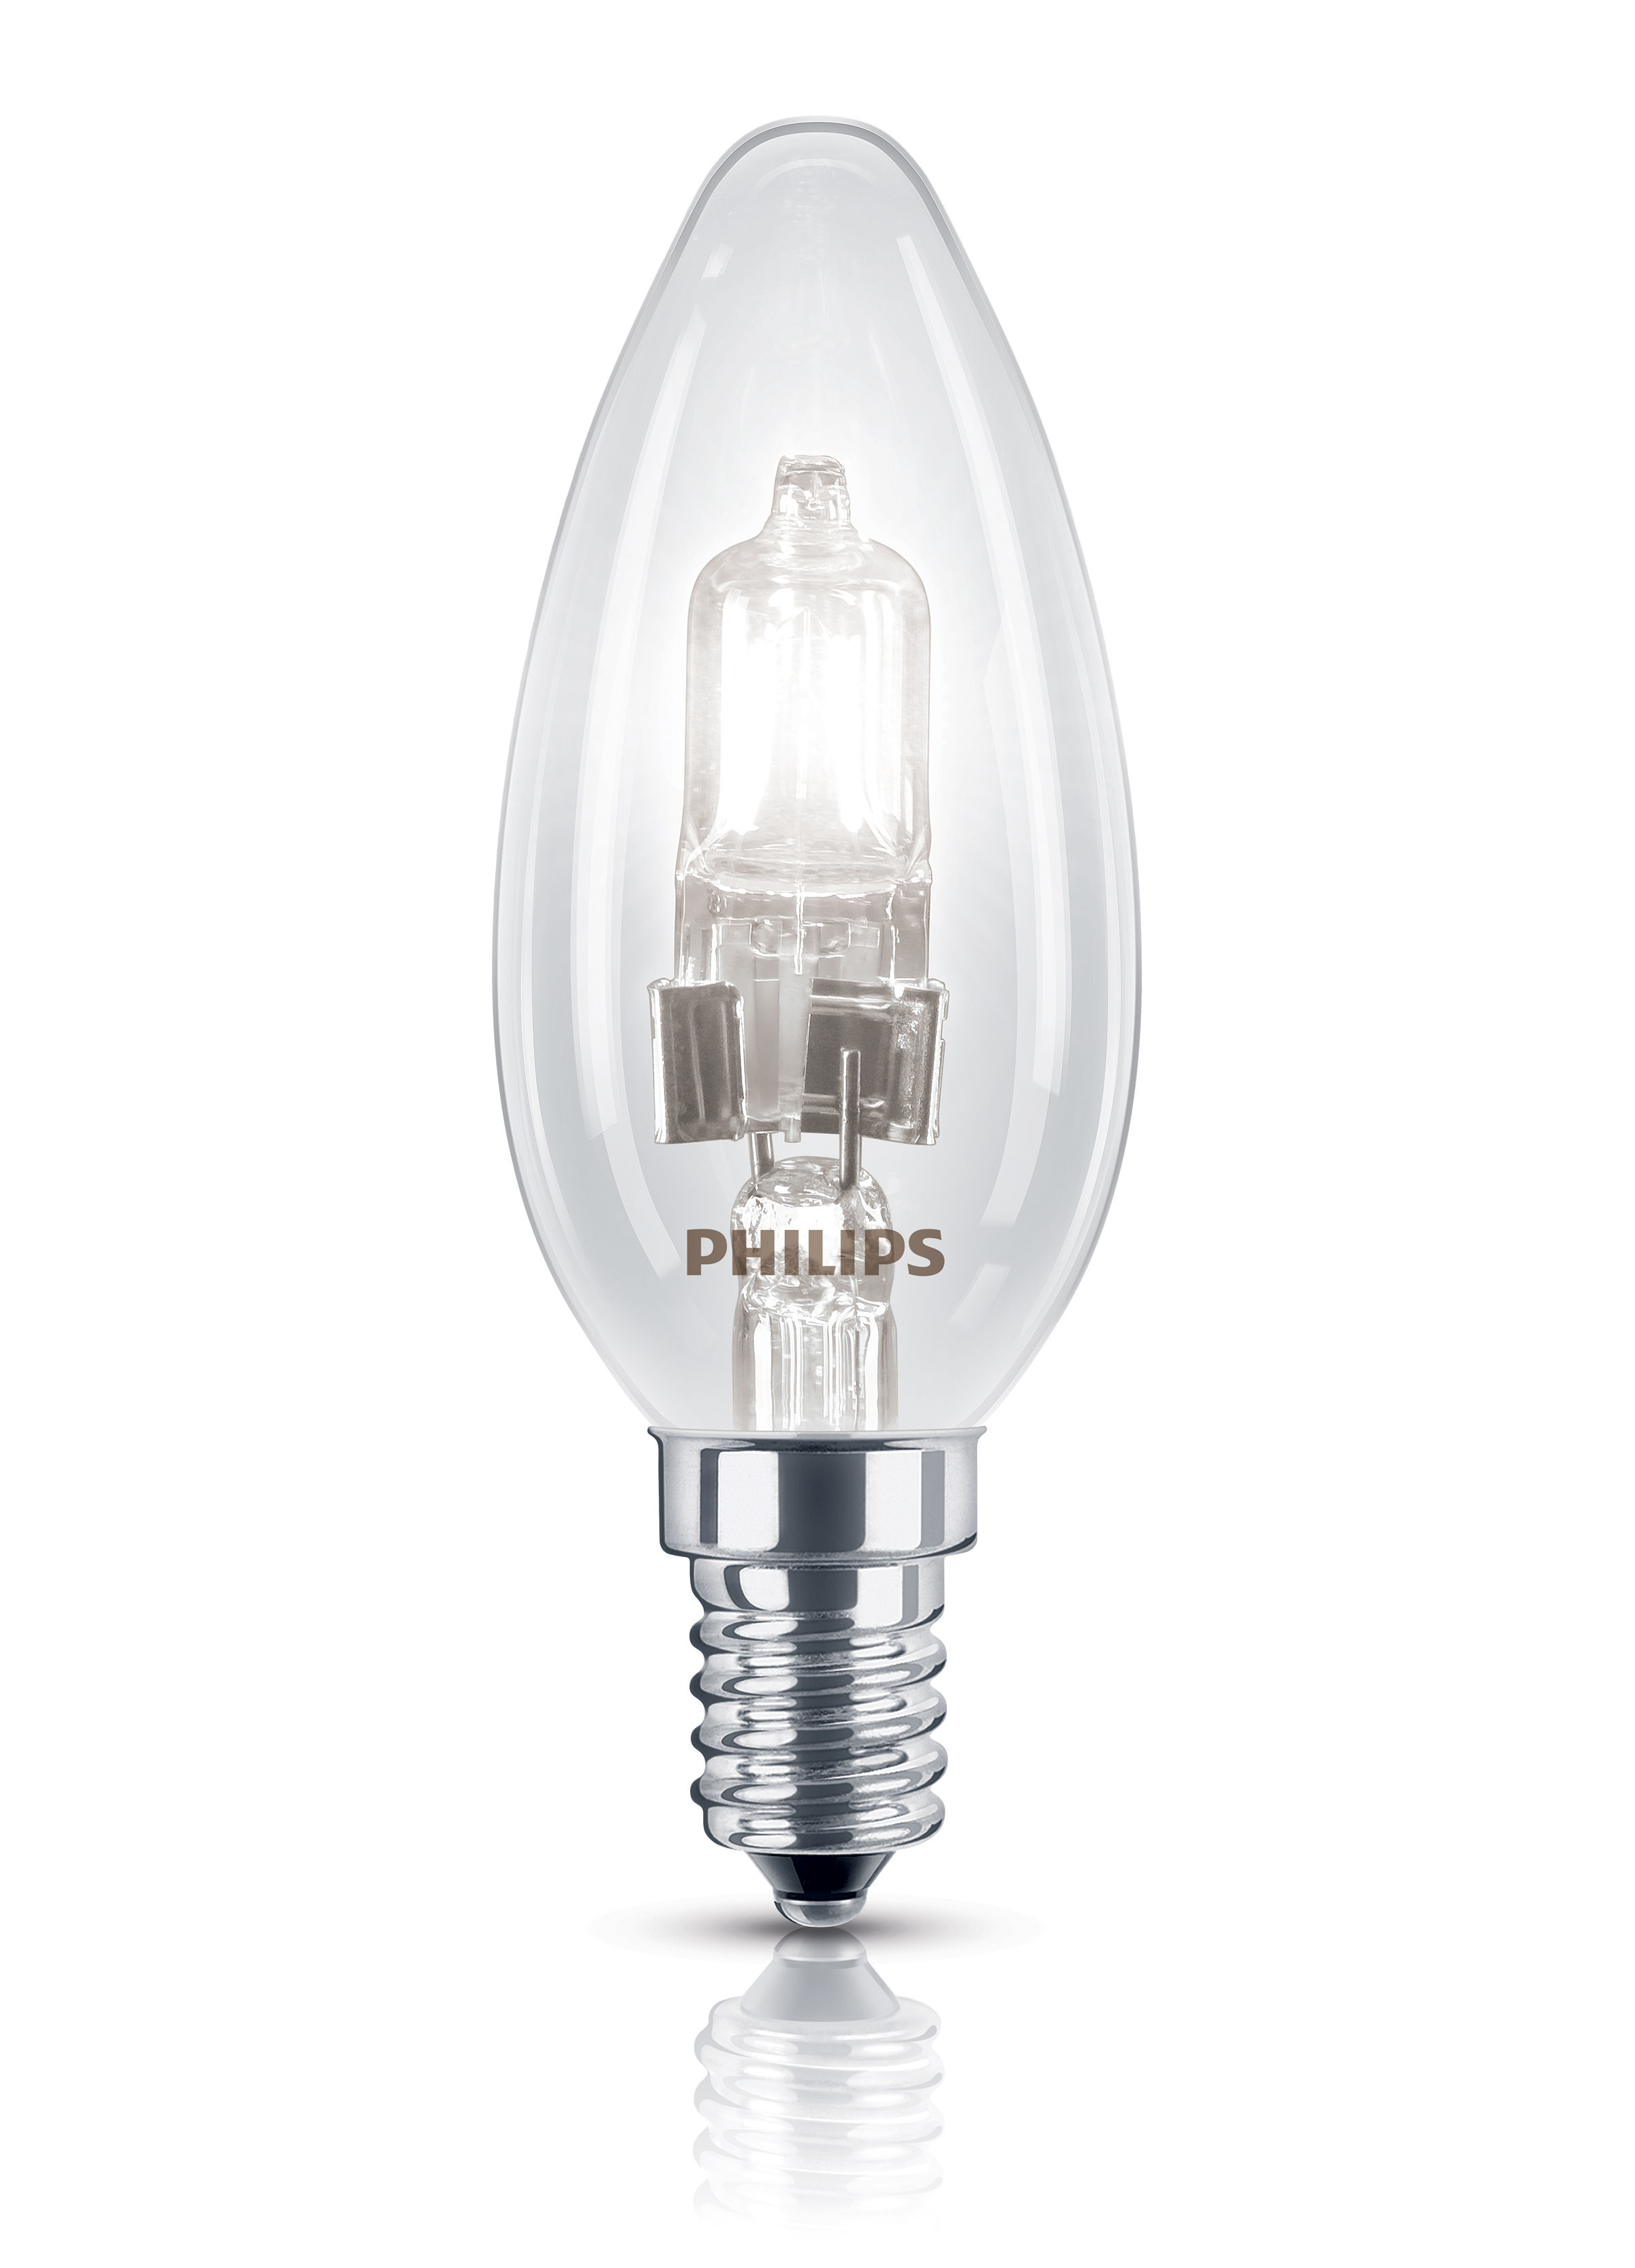 ecoclassic flamme eco halogen e14 bulb 28w 35w 370 lumen 28w 35w by philips made in. Black Bedroom Furniture Sets. Home Design Ideas